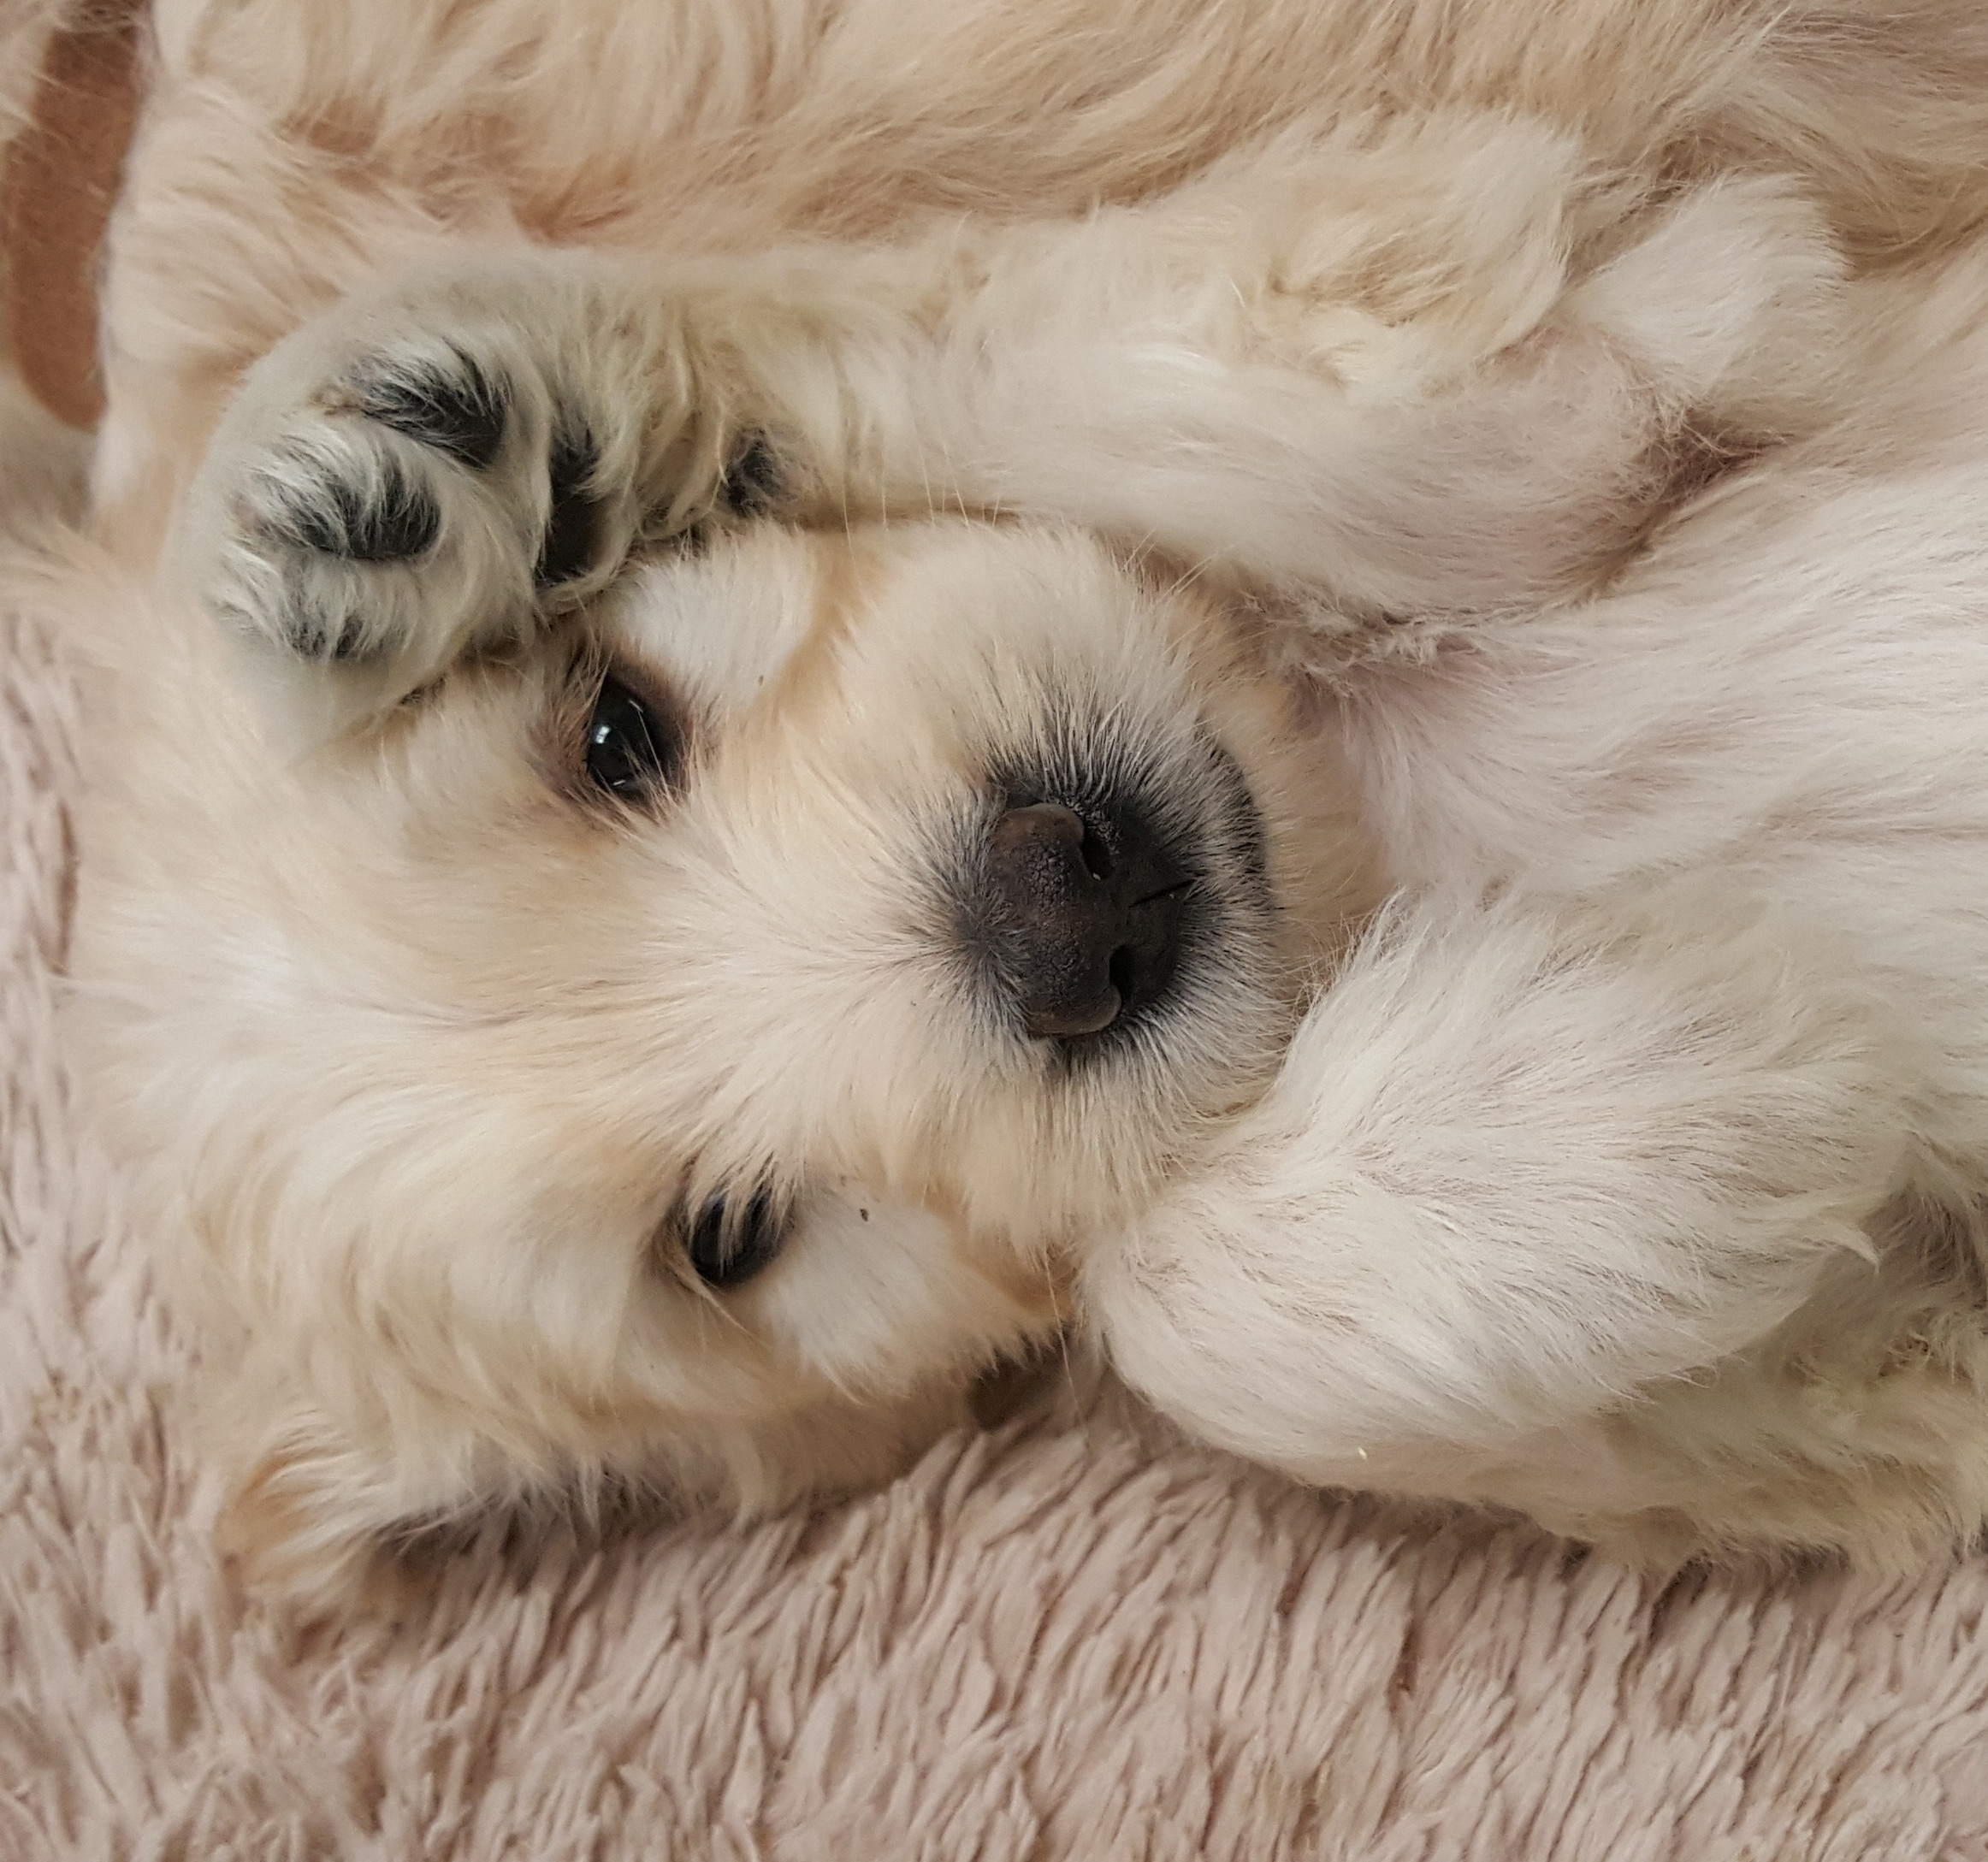 We are looking for a guardian home for this girl. She is an English cream standard goldendoodle.